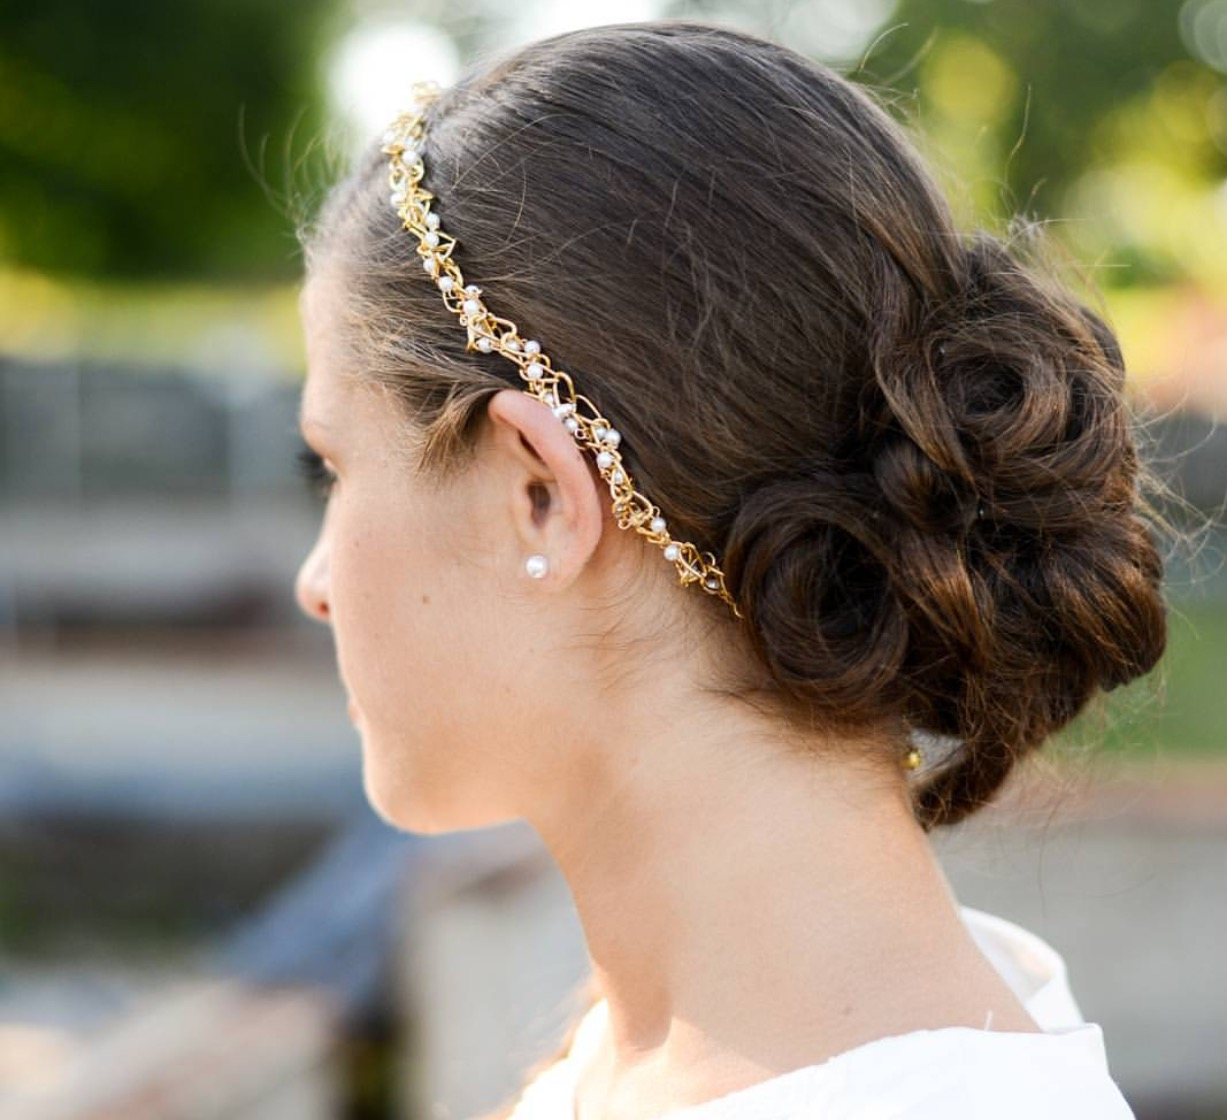 Wedding Hairstyles You'll Love. Classic Low Chignon. Mint Photography. Elegant, Vintage-Style Curls. Tim Waters Photograph. Romantic Updo With a Crown of Roses.